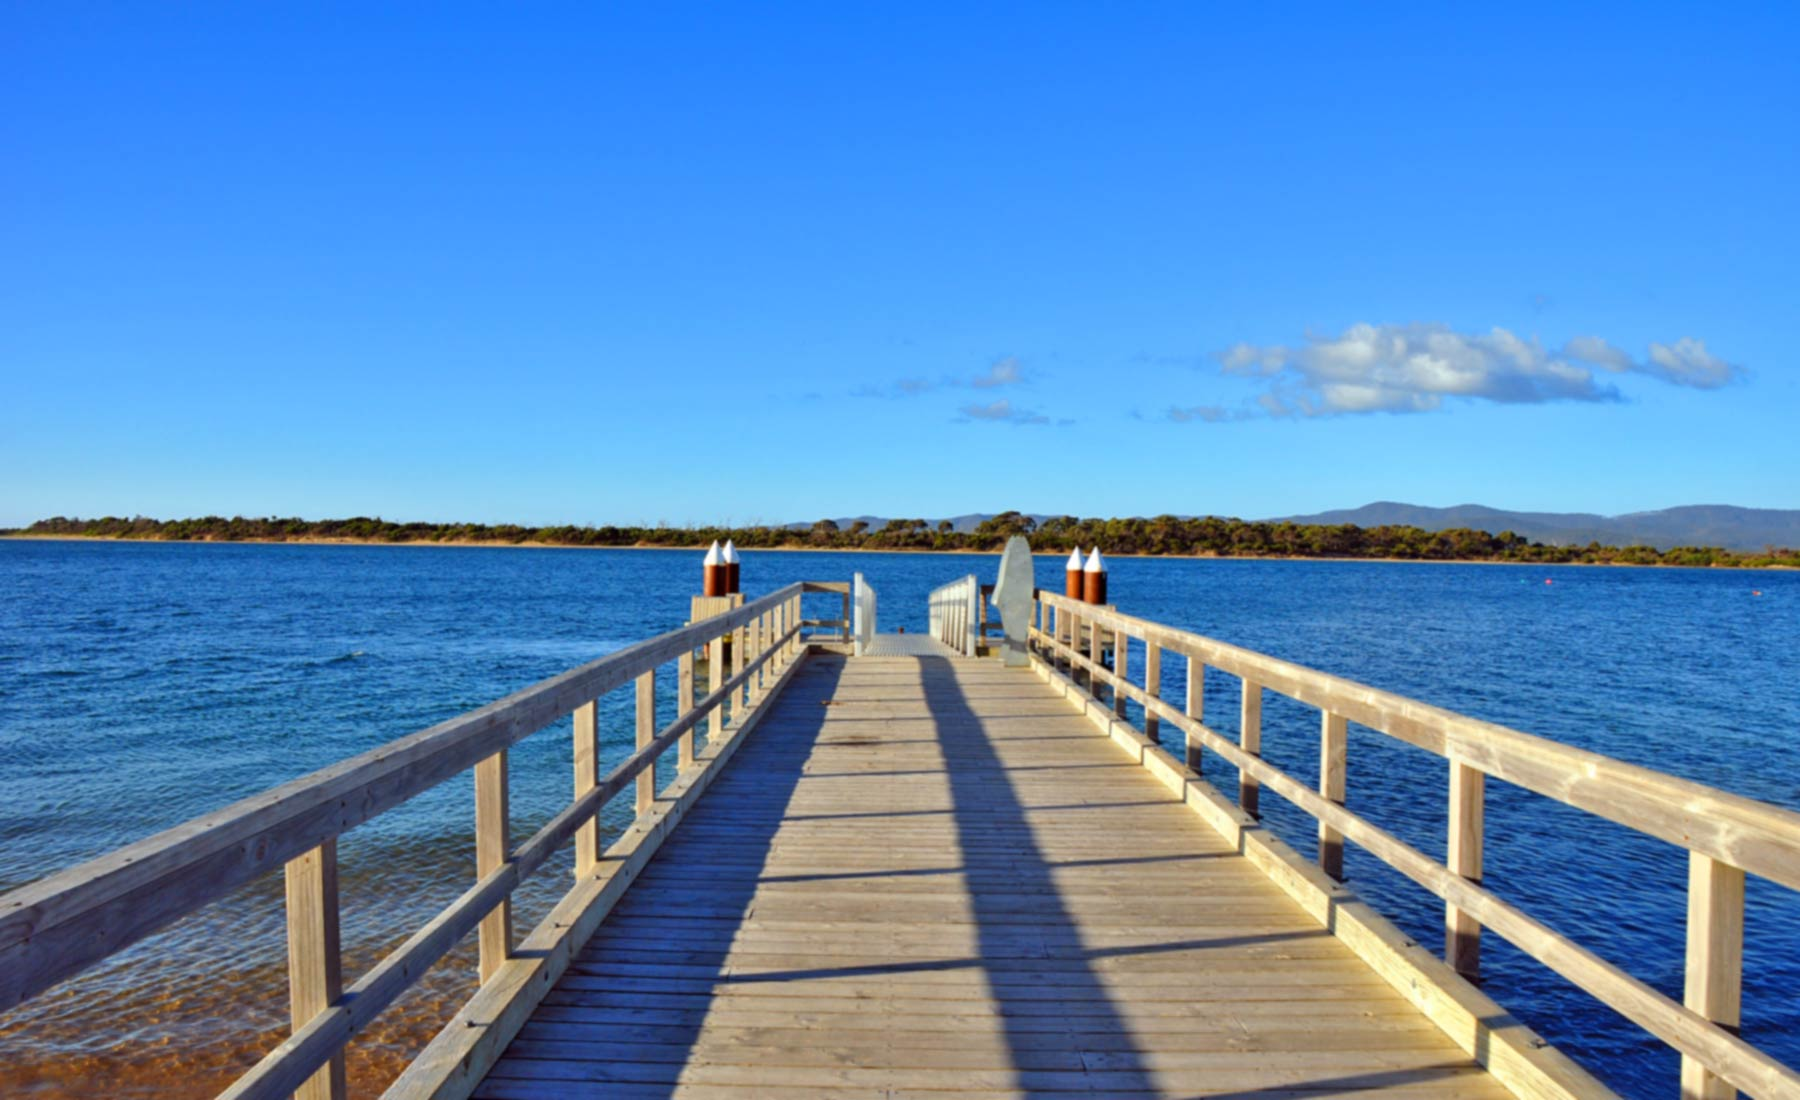 Port Sorell Australia  city images : ... , tours, Fishing, Family Holiday fun, Port Sorell Tasmania, Australia